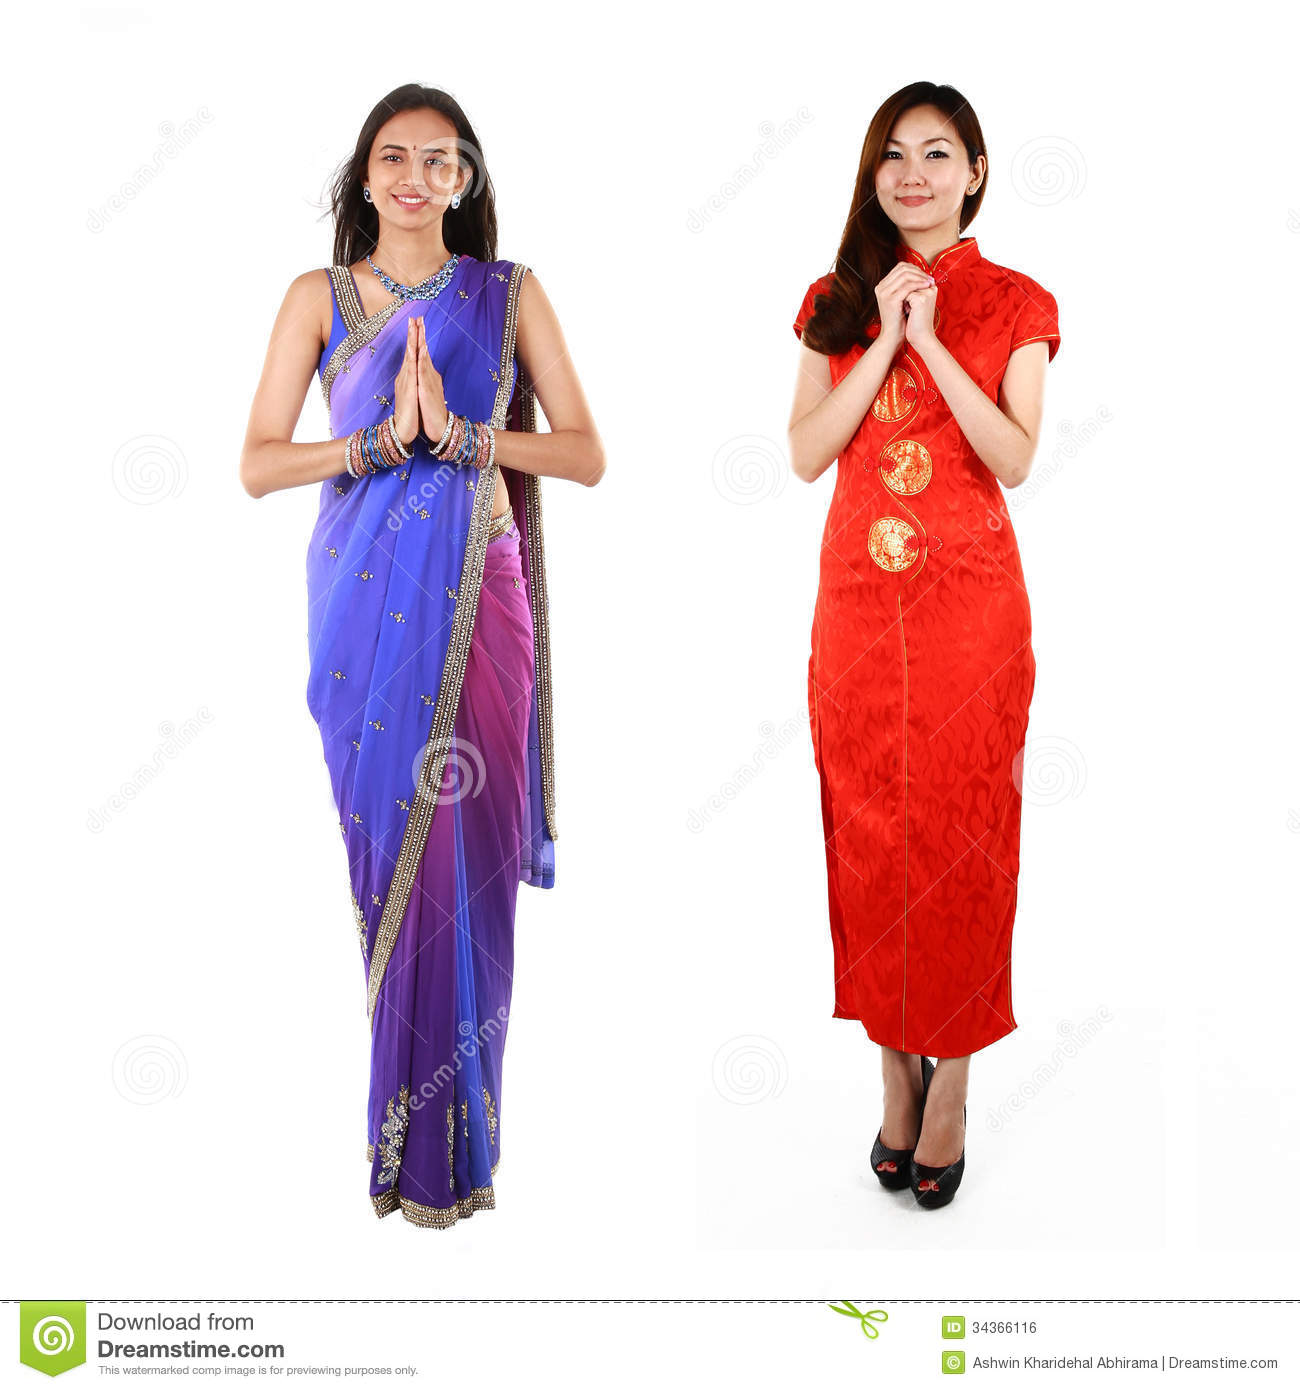 Western influences on Indian Women's apparel | Indo-West Inspired